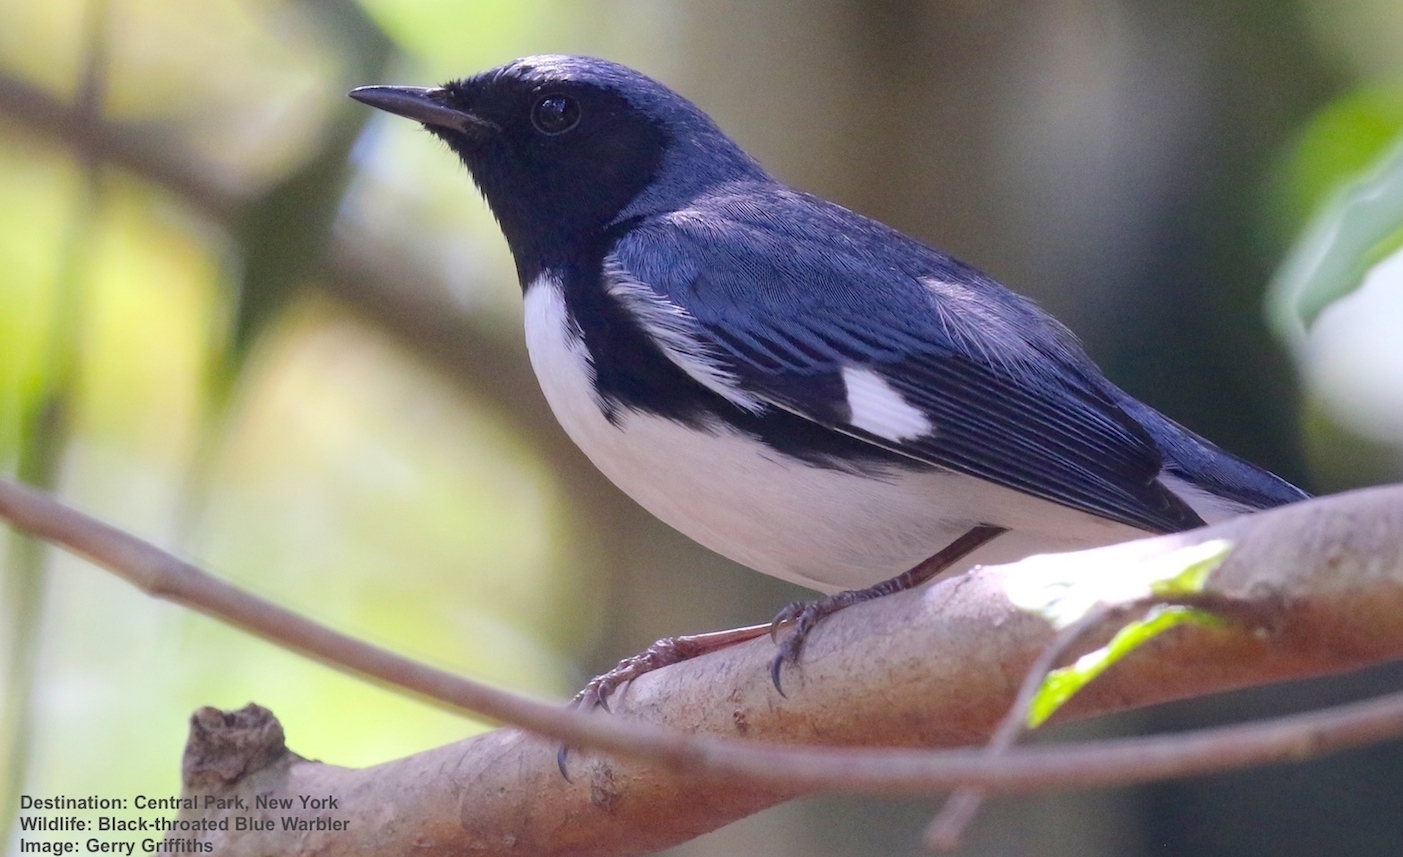 BLACK-THROATED BLUE WARBLERS, LIKE THIS MALE, WINTER IN PANAMA AND THE CARIBBEAN THEN MIGRATE ANNUALLY TO BREEDING GROUNDS IN AS FAR NORTH AS SOUTHERN ONTARIO AND QUEBEC, A JOURNEY OF ABOUT 4600 MILES (7500KM ) IMAGE: THANKS TO GERALD GRIFFITHS AND AVIAN ADVENTURES.